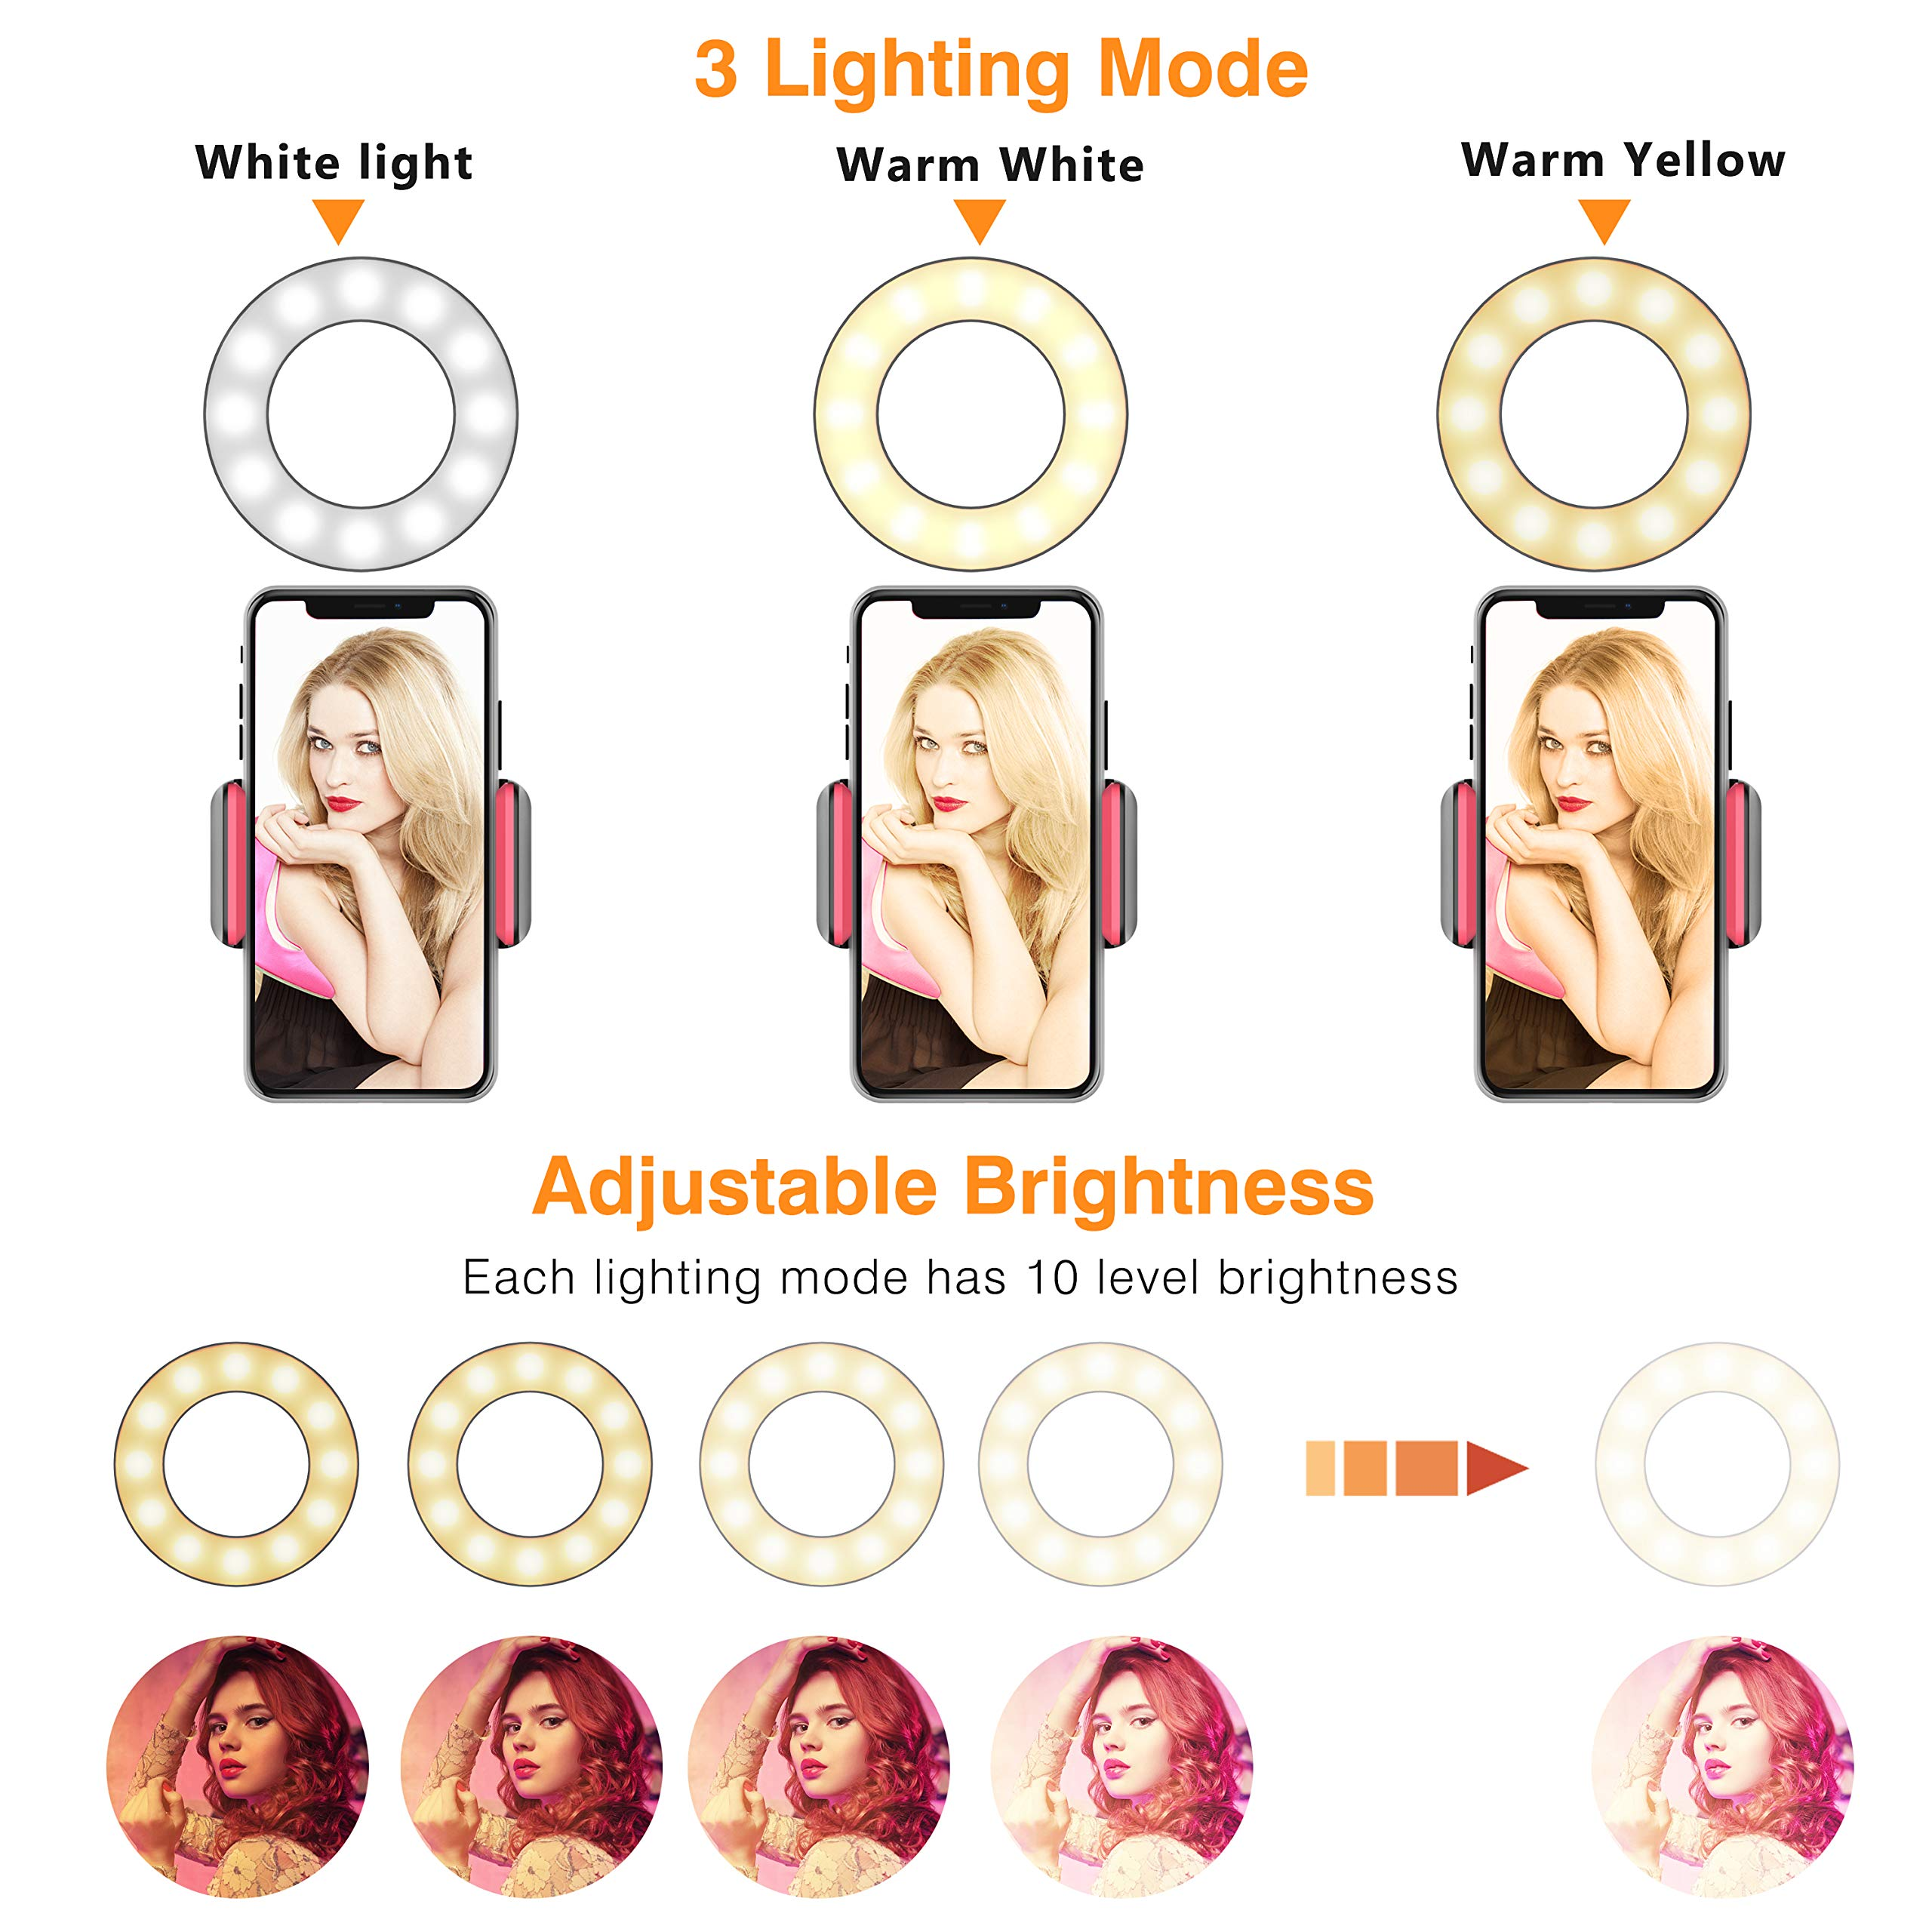 Selfie Ring Light, UPGRADED Selfie Light with Cell Phone Holder Stand for Live Stream Makeup Including Remote Shutter, LED Camera Light 3 Light Mode 10 Level Brightness Flexible Arm for iPhone/Android by Erligpowht (Image #4)